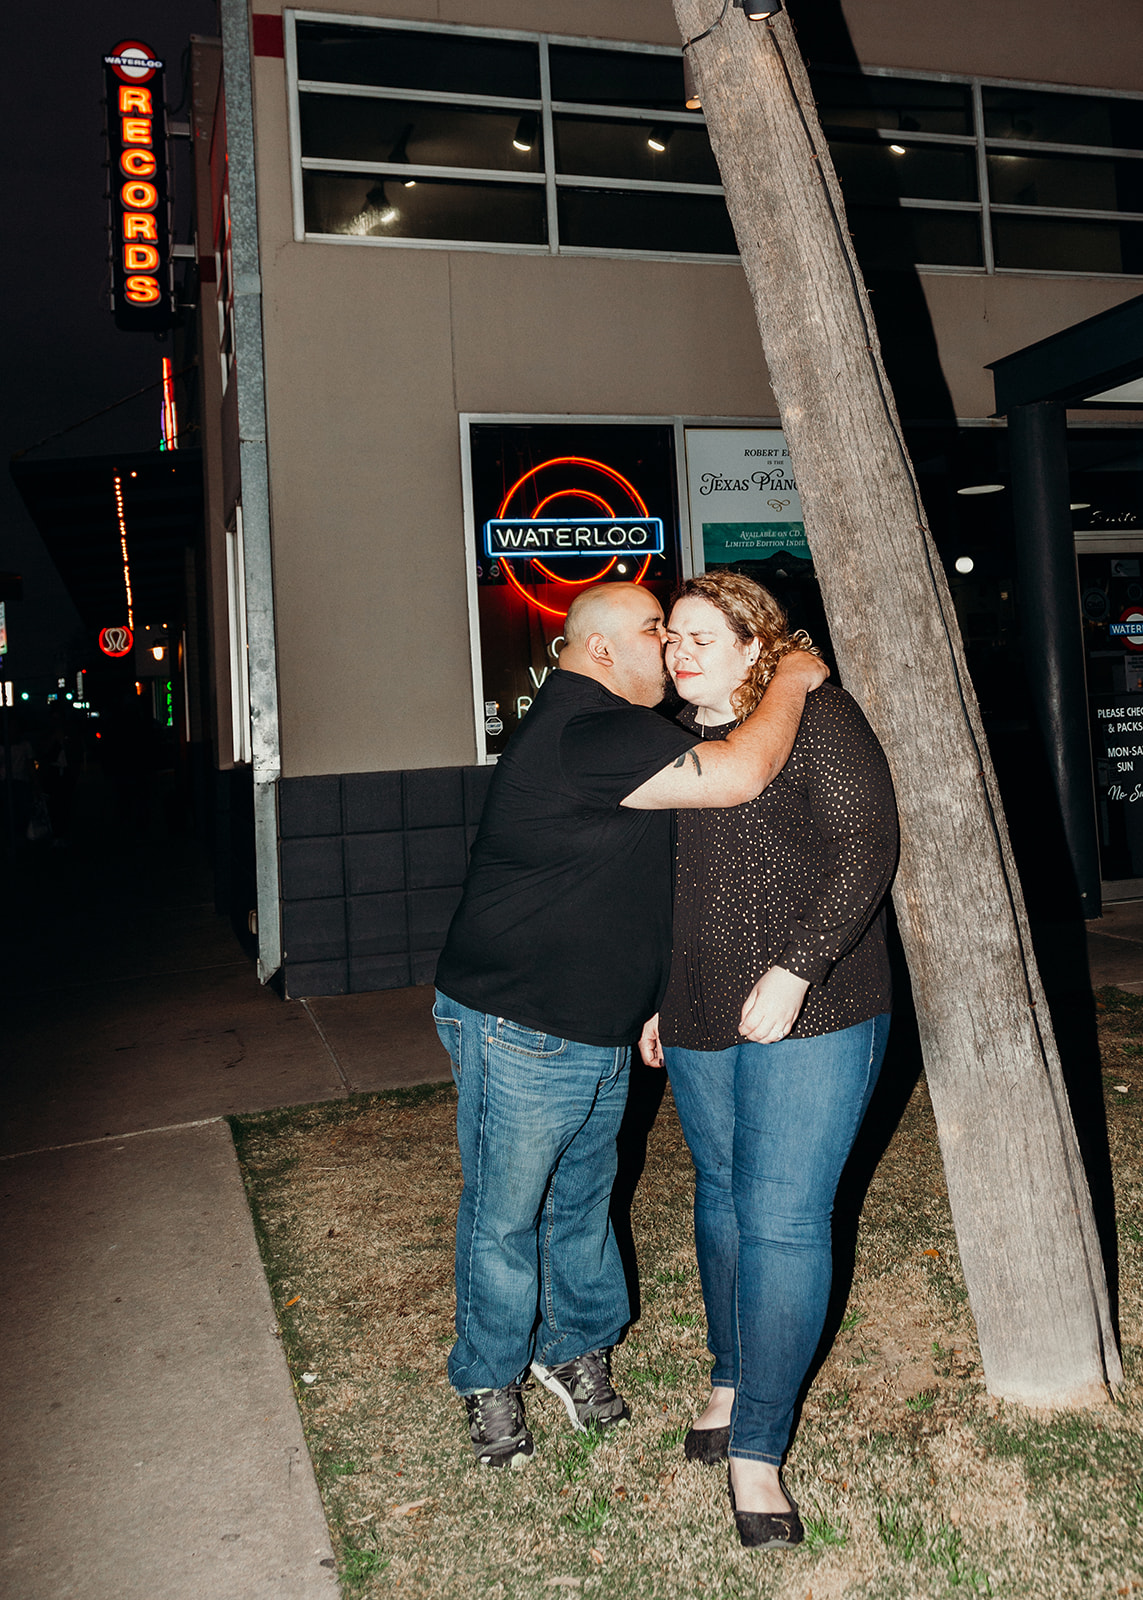 Sharing a kiss on the cheek at an intimate and laid back couples engagement shoot at Waterloo Records by Austin Texas LGBTQ friendly wedding photographer Ziggy Shoots